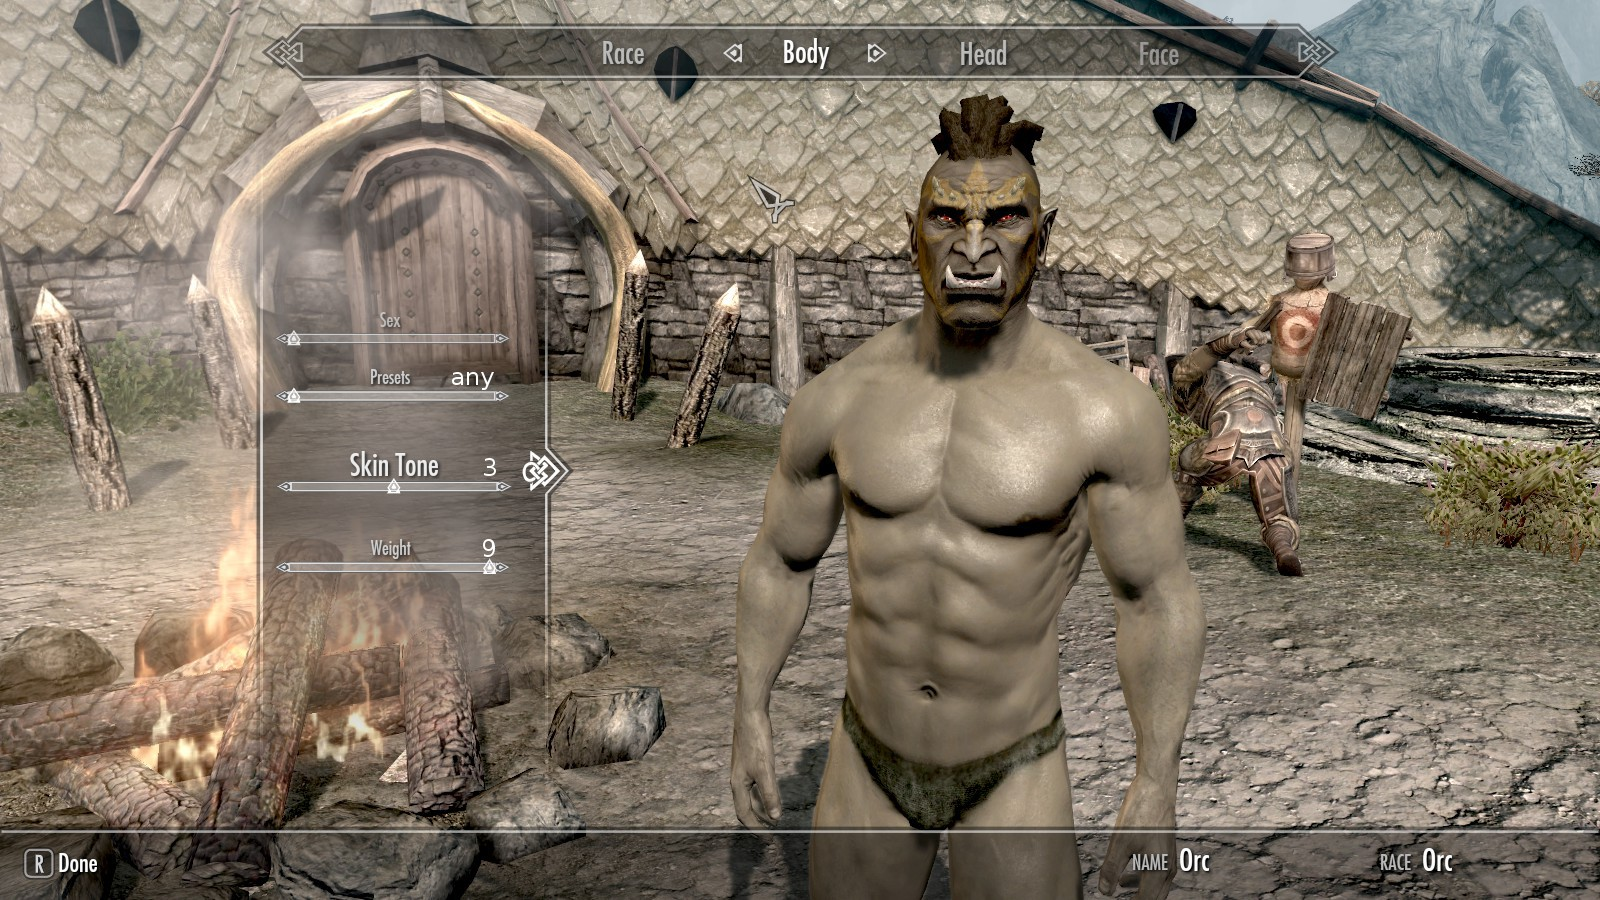 Any good Orc sliders out there? - The Elder Scrolls V